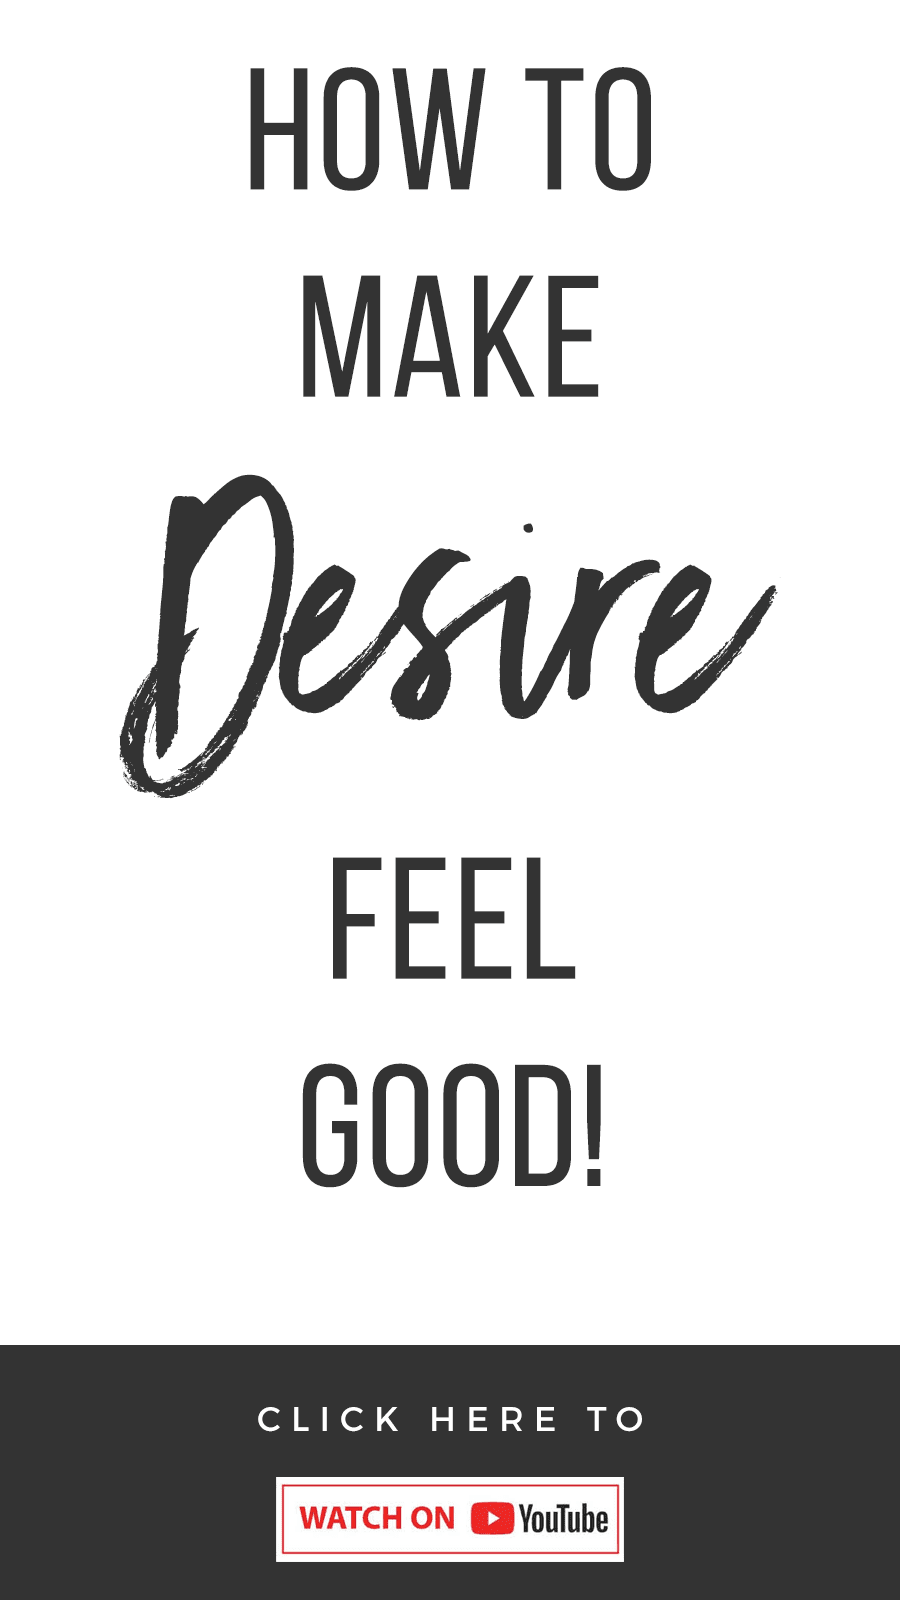 How To Make Desire Actually Feel Good (Manifesting Trick!)